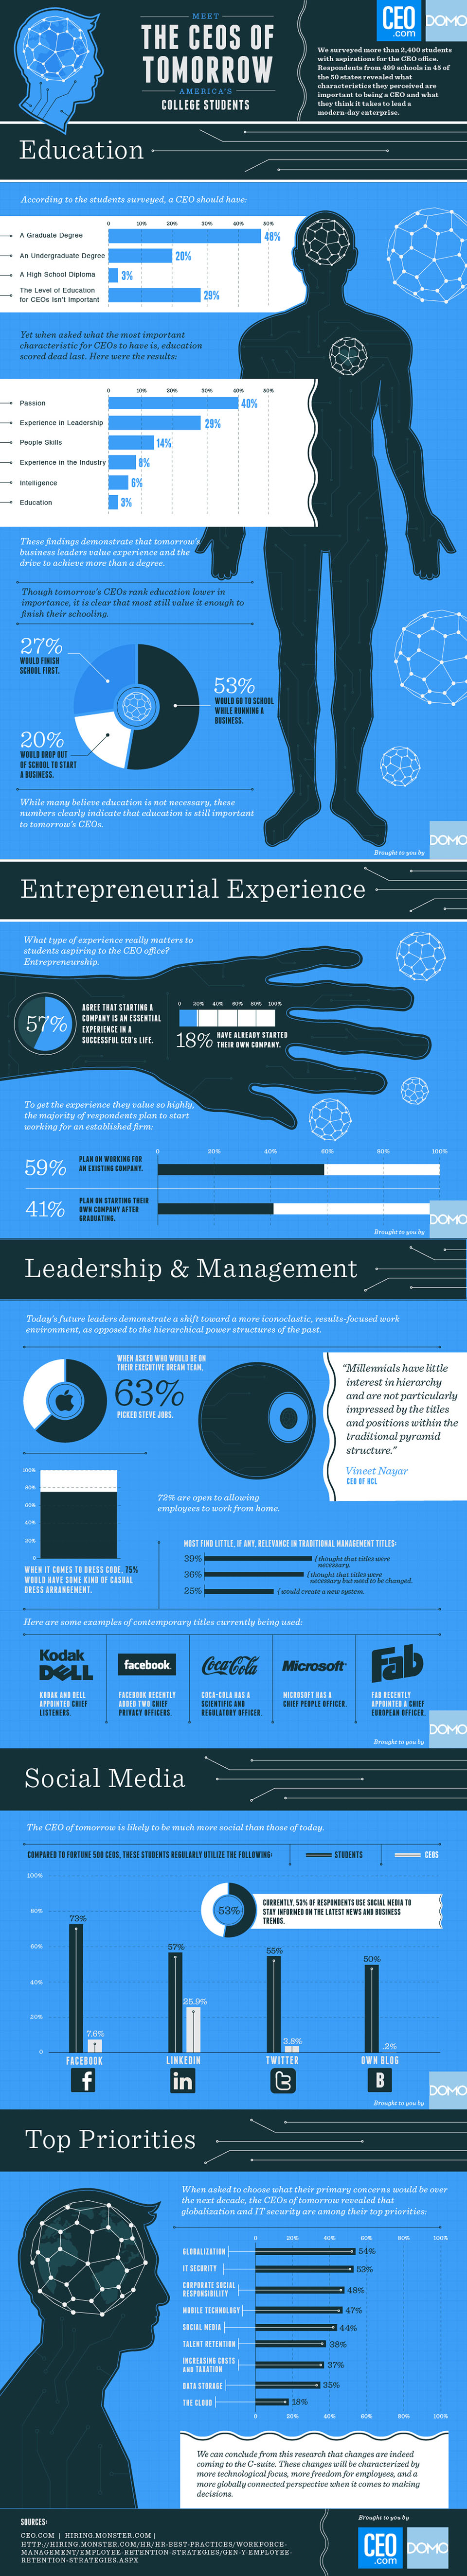 the ceos of tomorrow1 The CEOs of Tomorrow [Infographic]